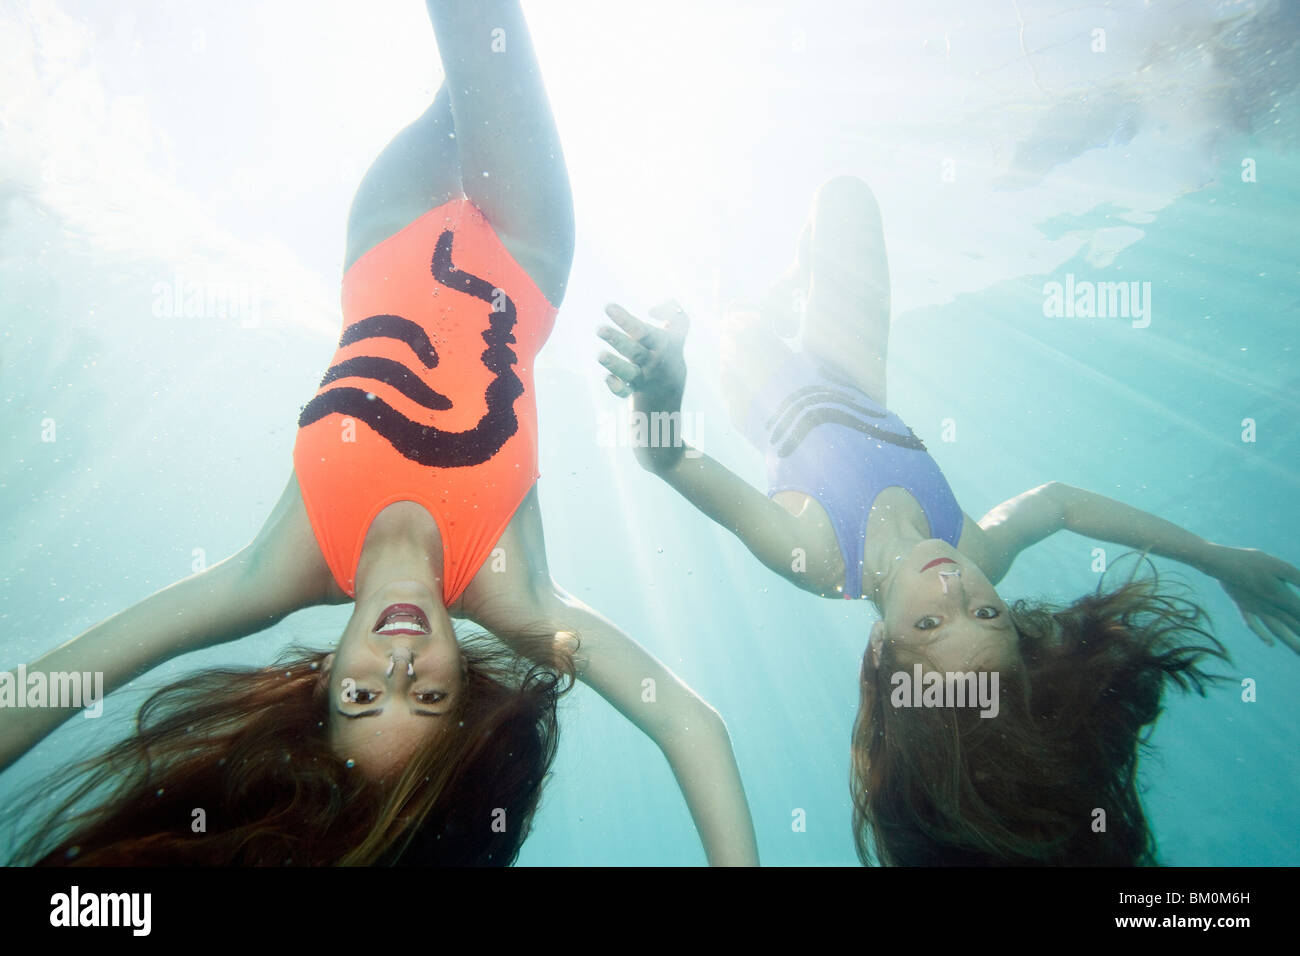 Synchronized swimmers underwater - Stock Image